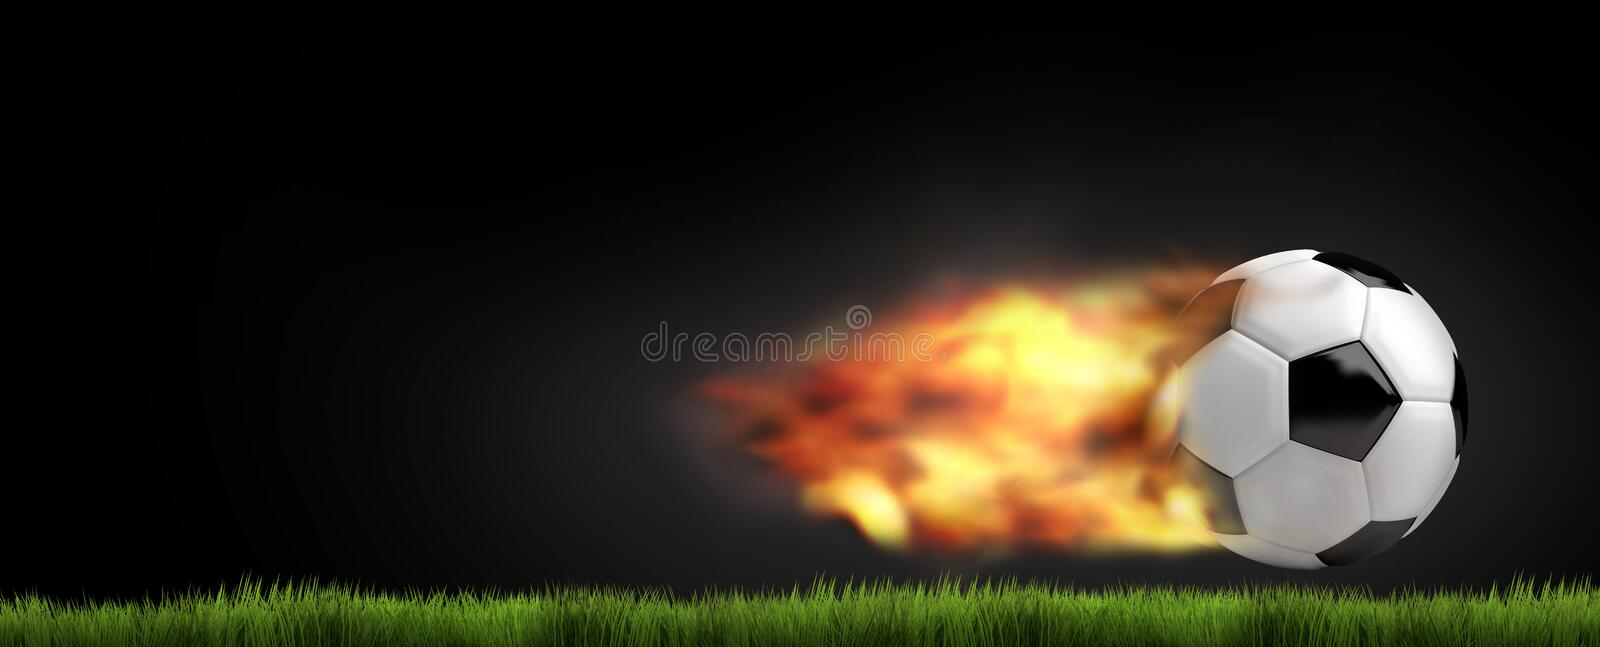 Le football 3d du football rendent la boule le football du feu de flammes illustration stock